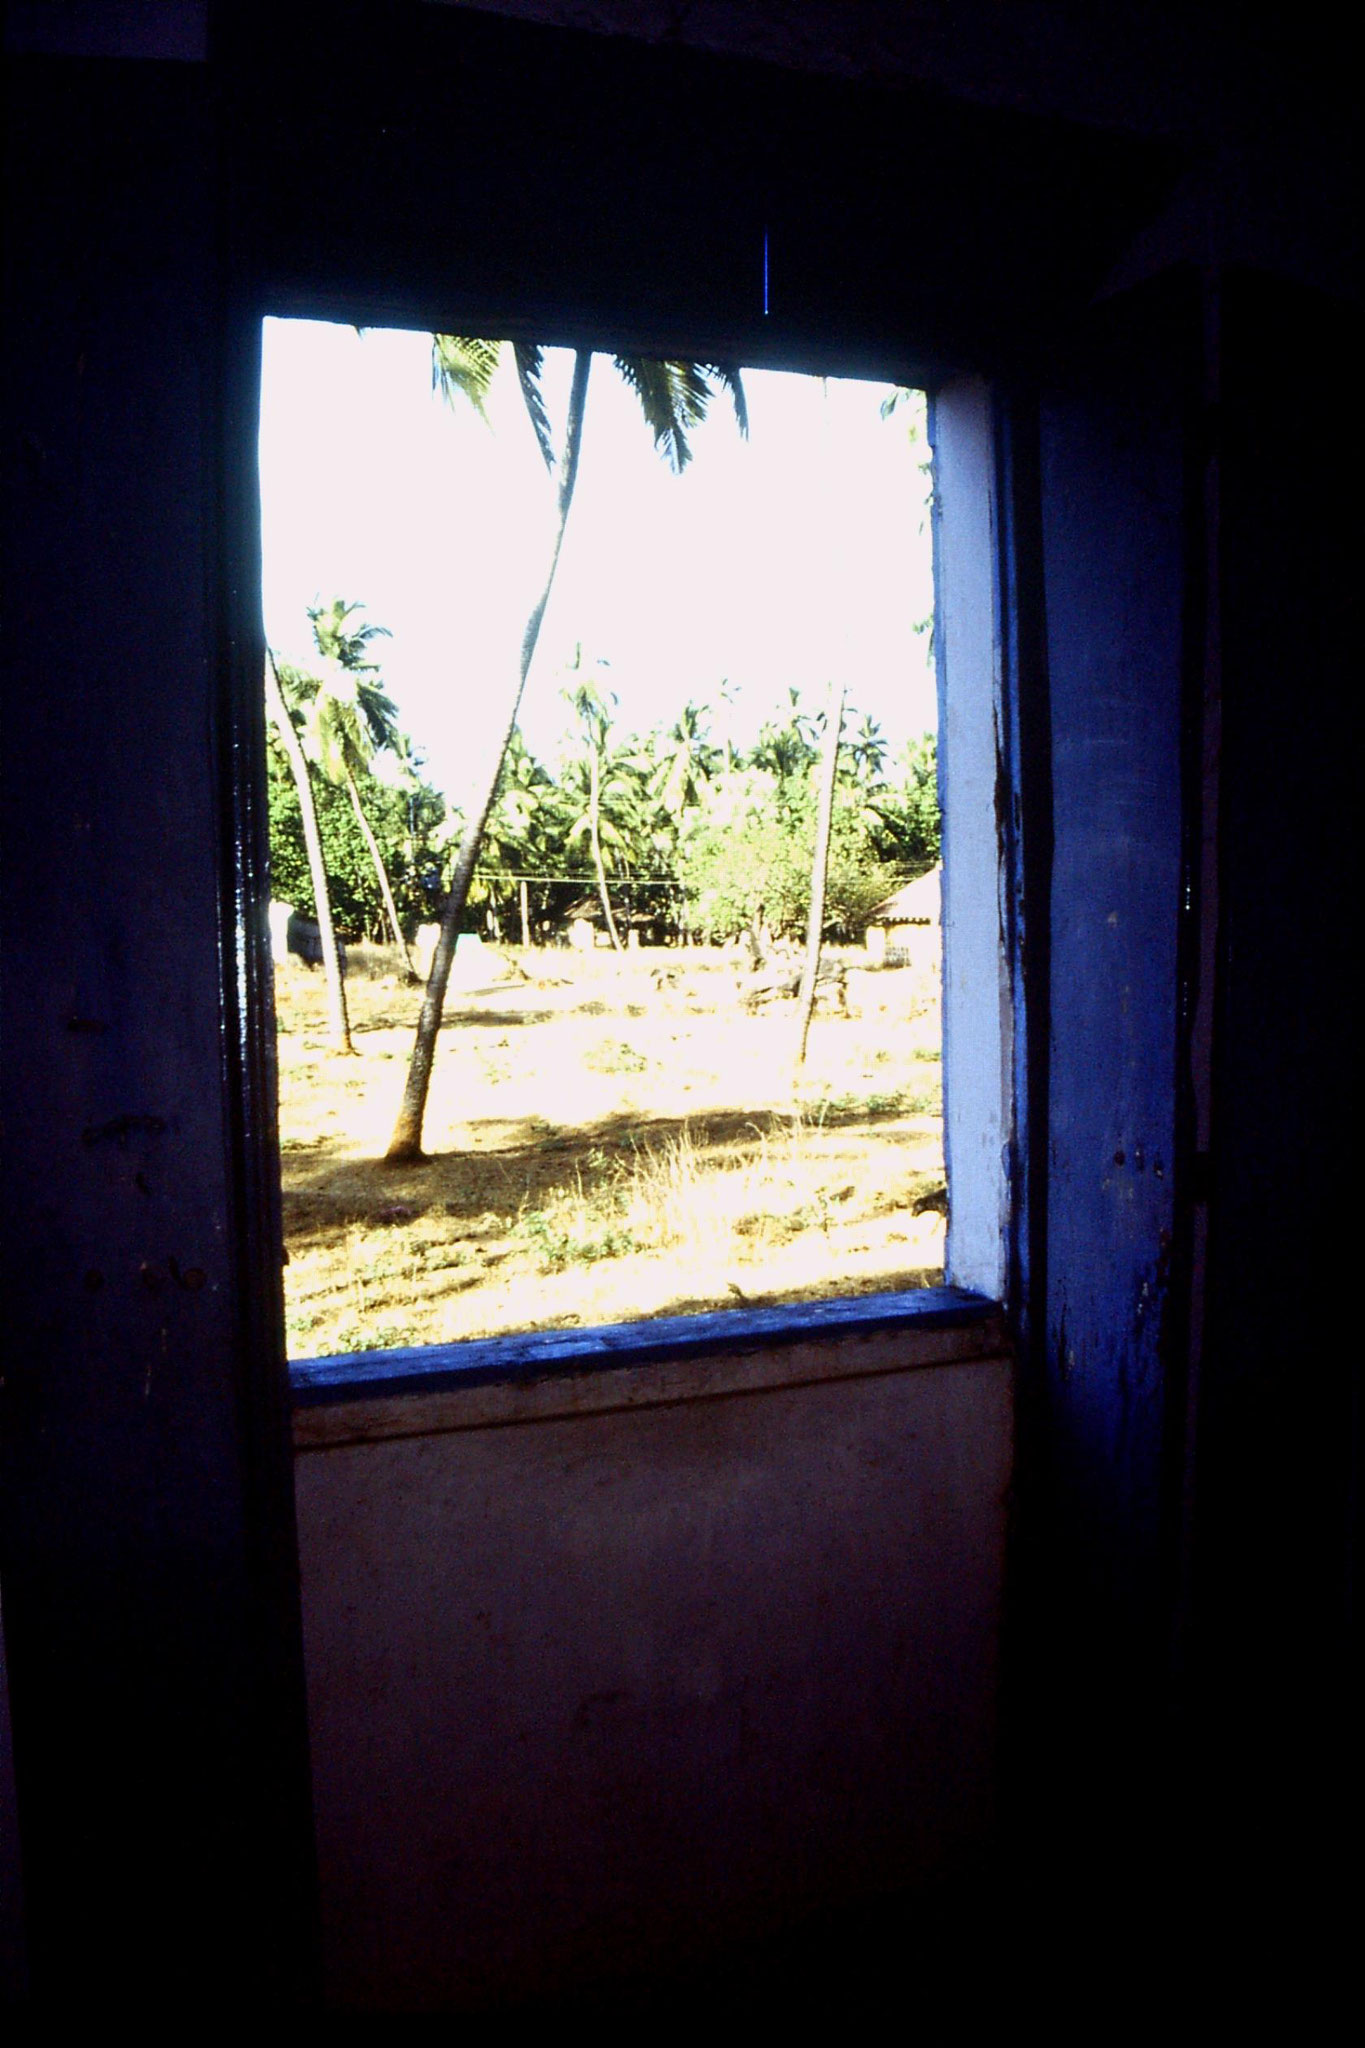 4/1/1990: 31: Goa Candolim view from our window